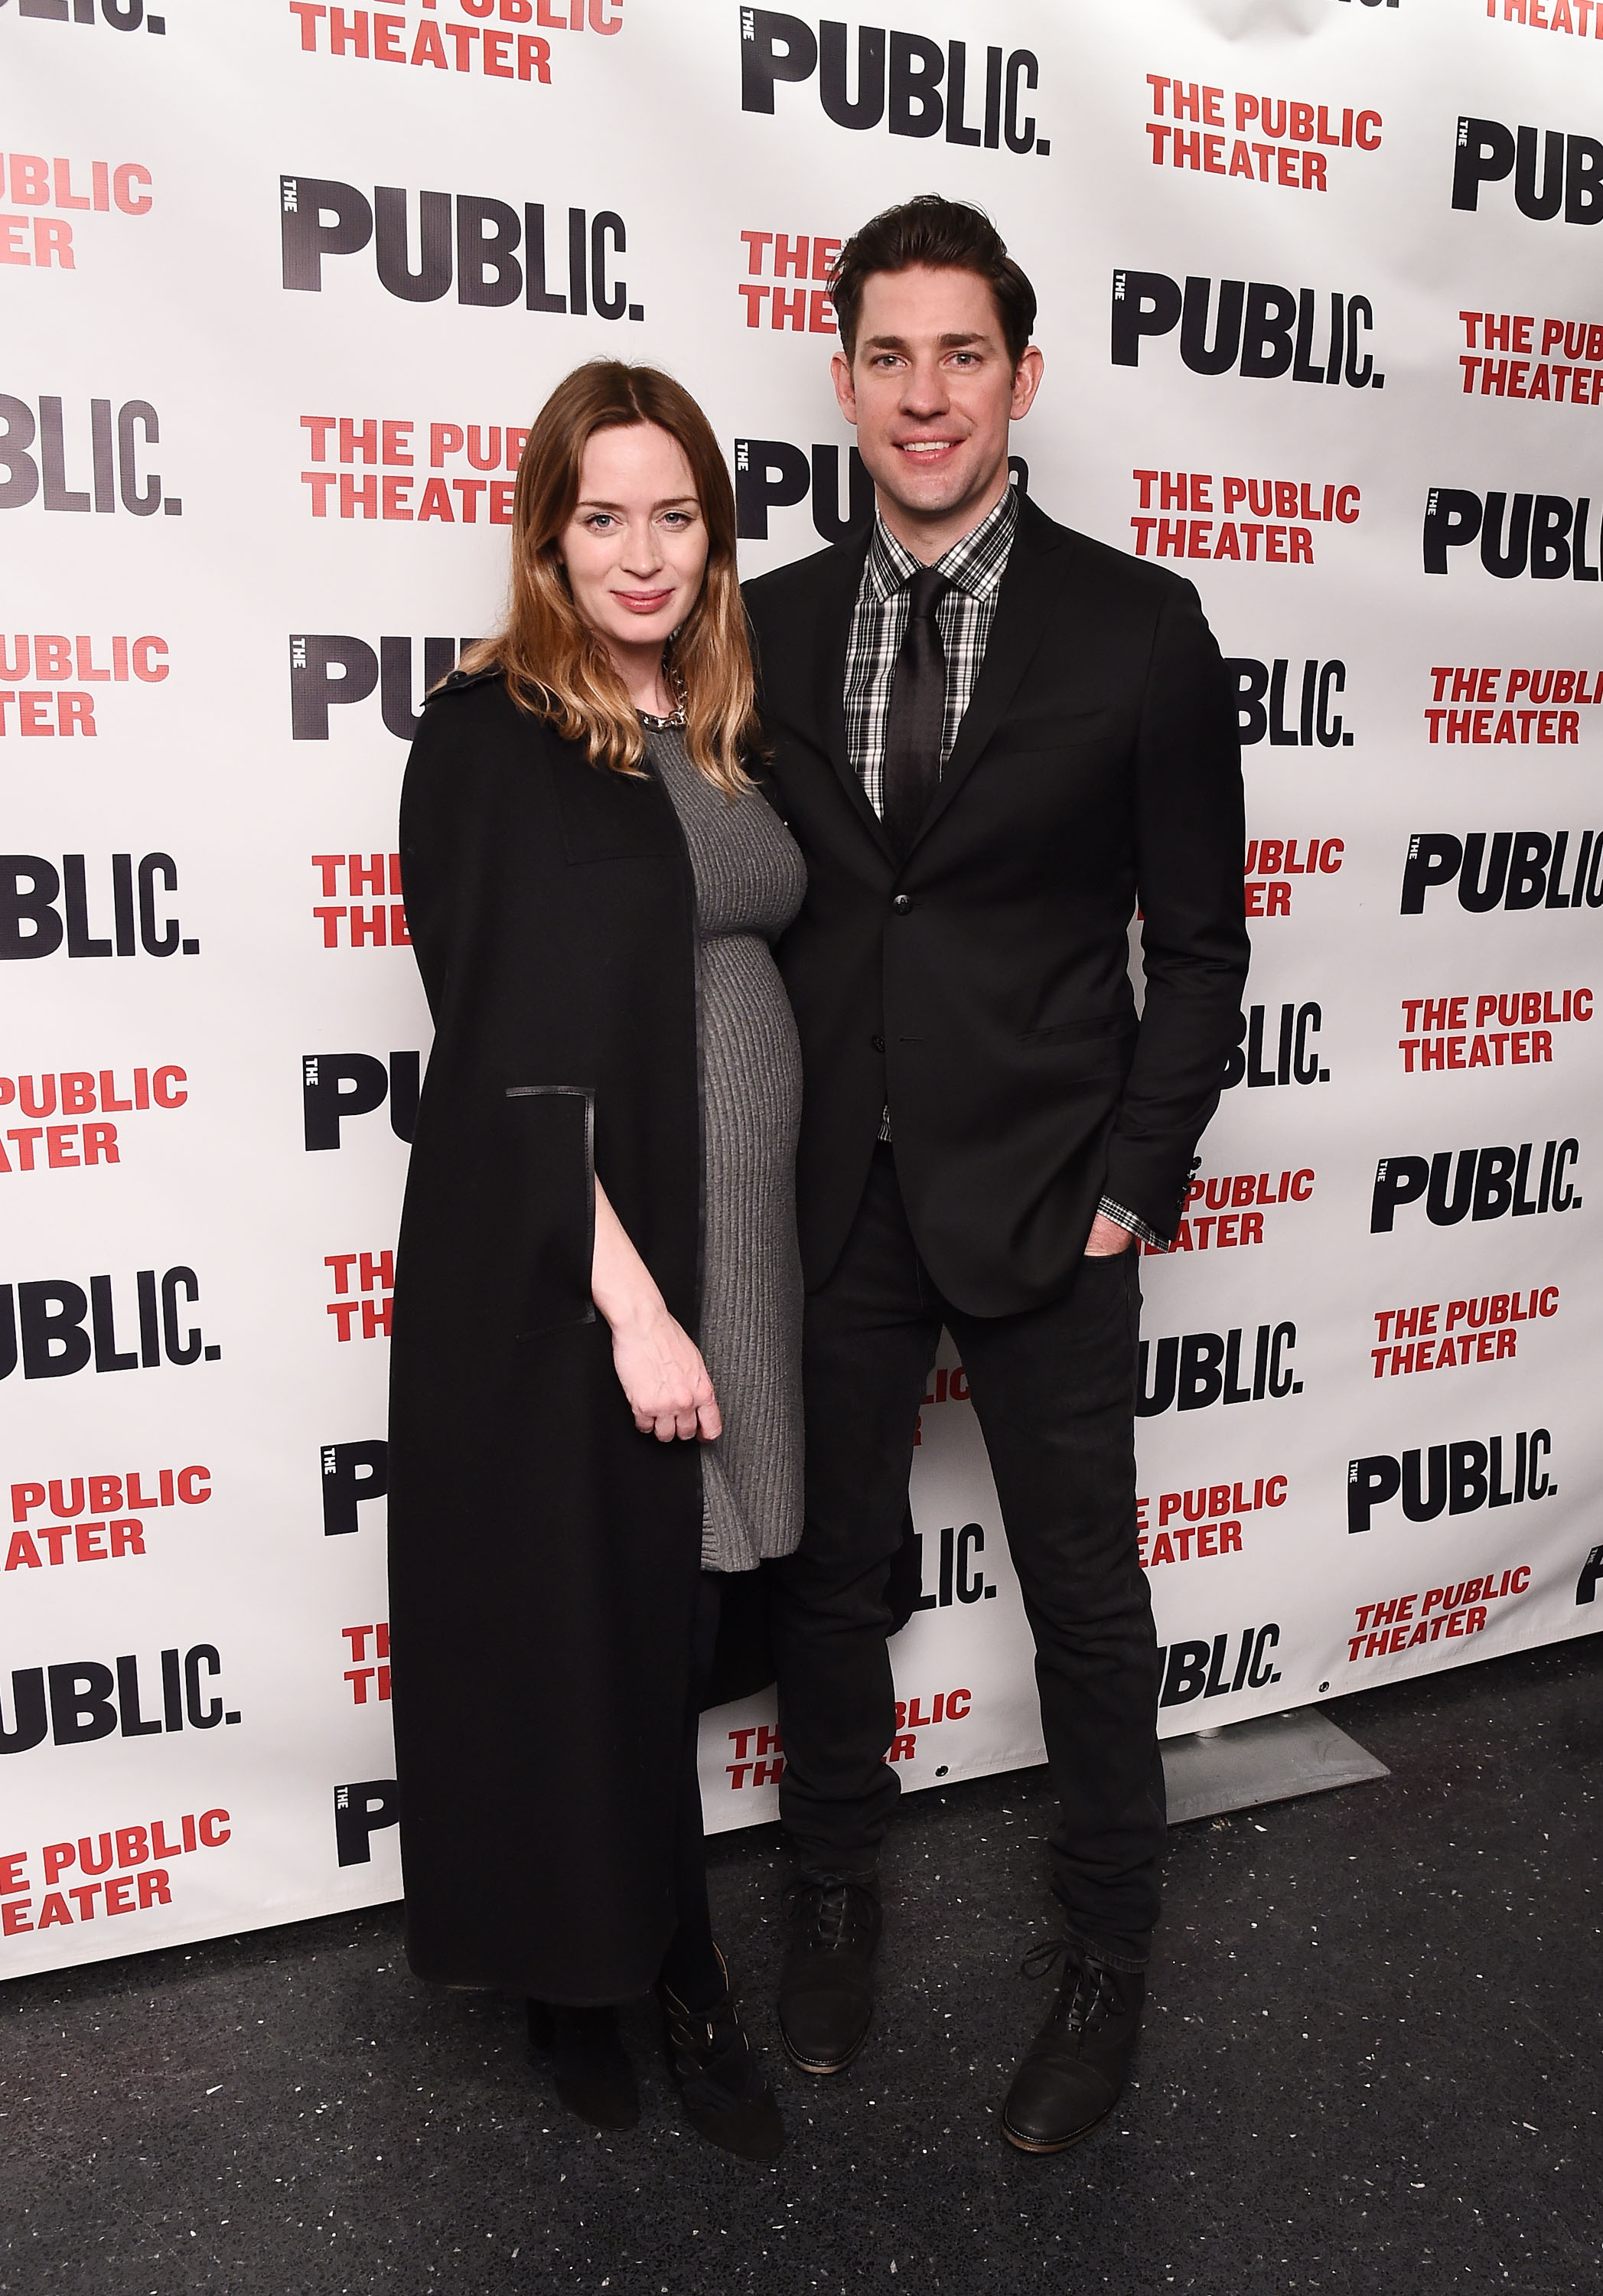 Emily Blunt opens up about pregnancy and possibly working with John